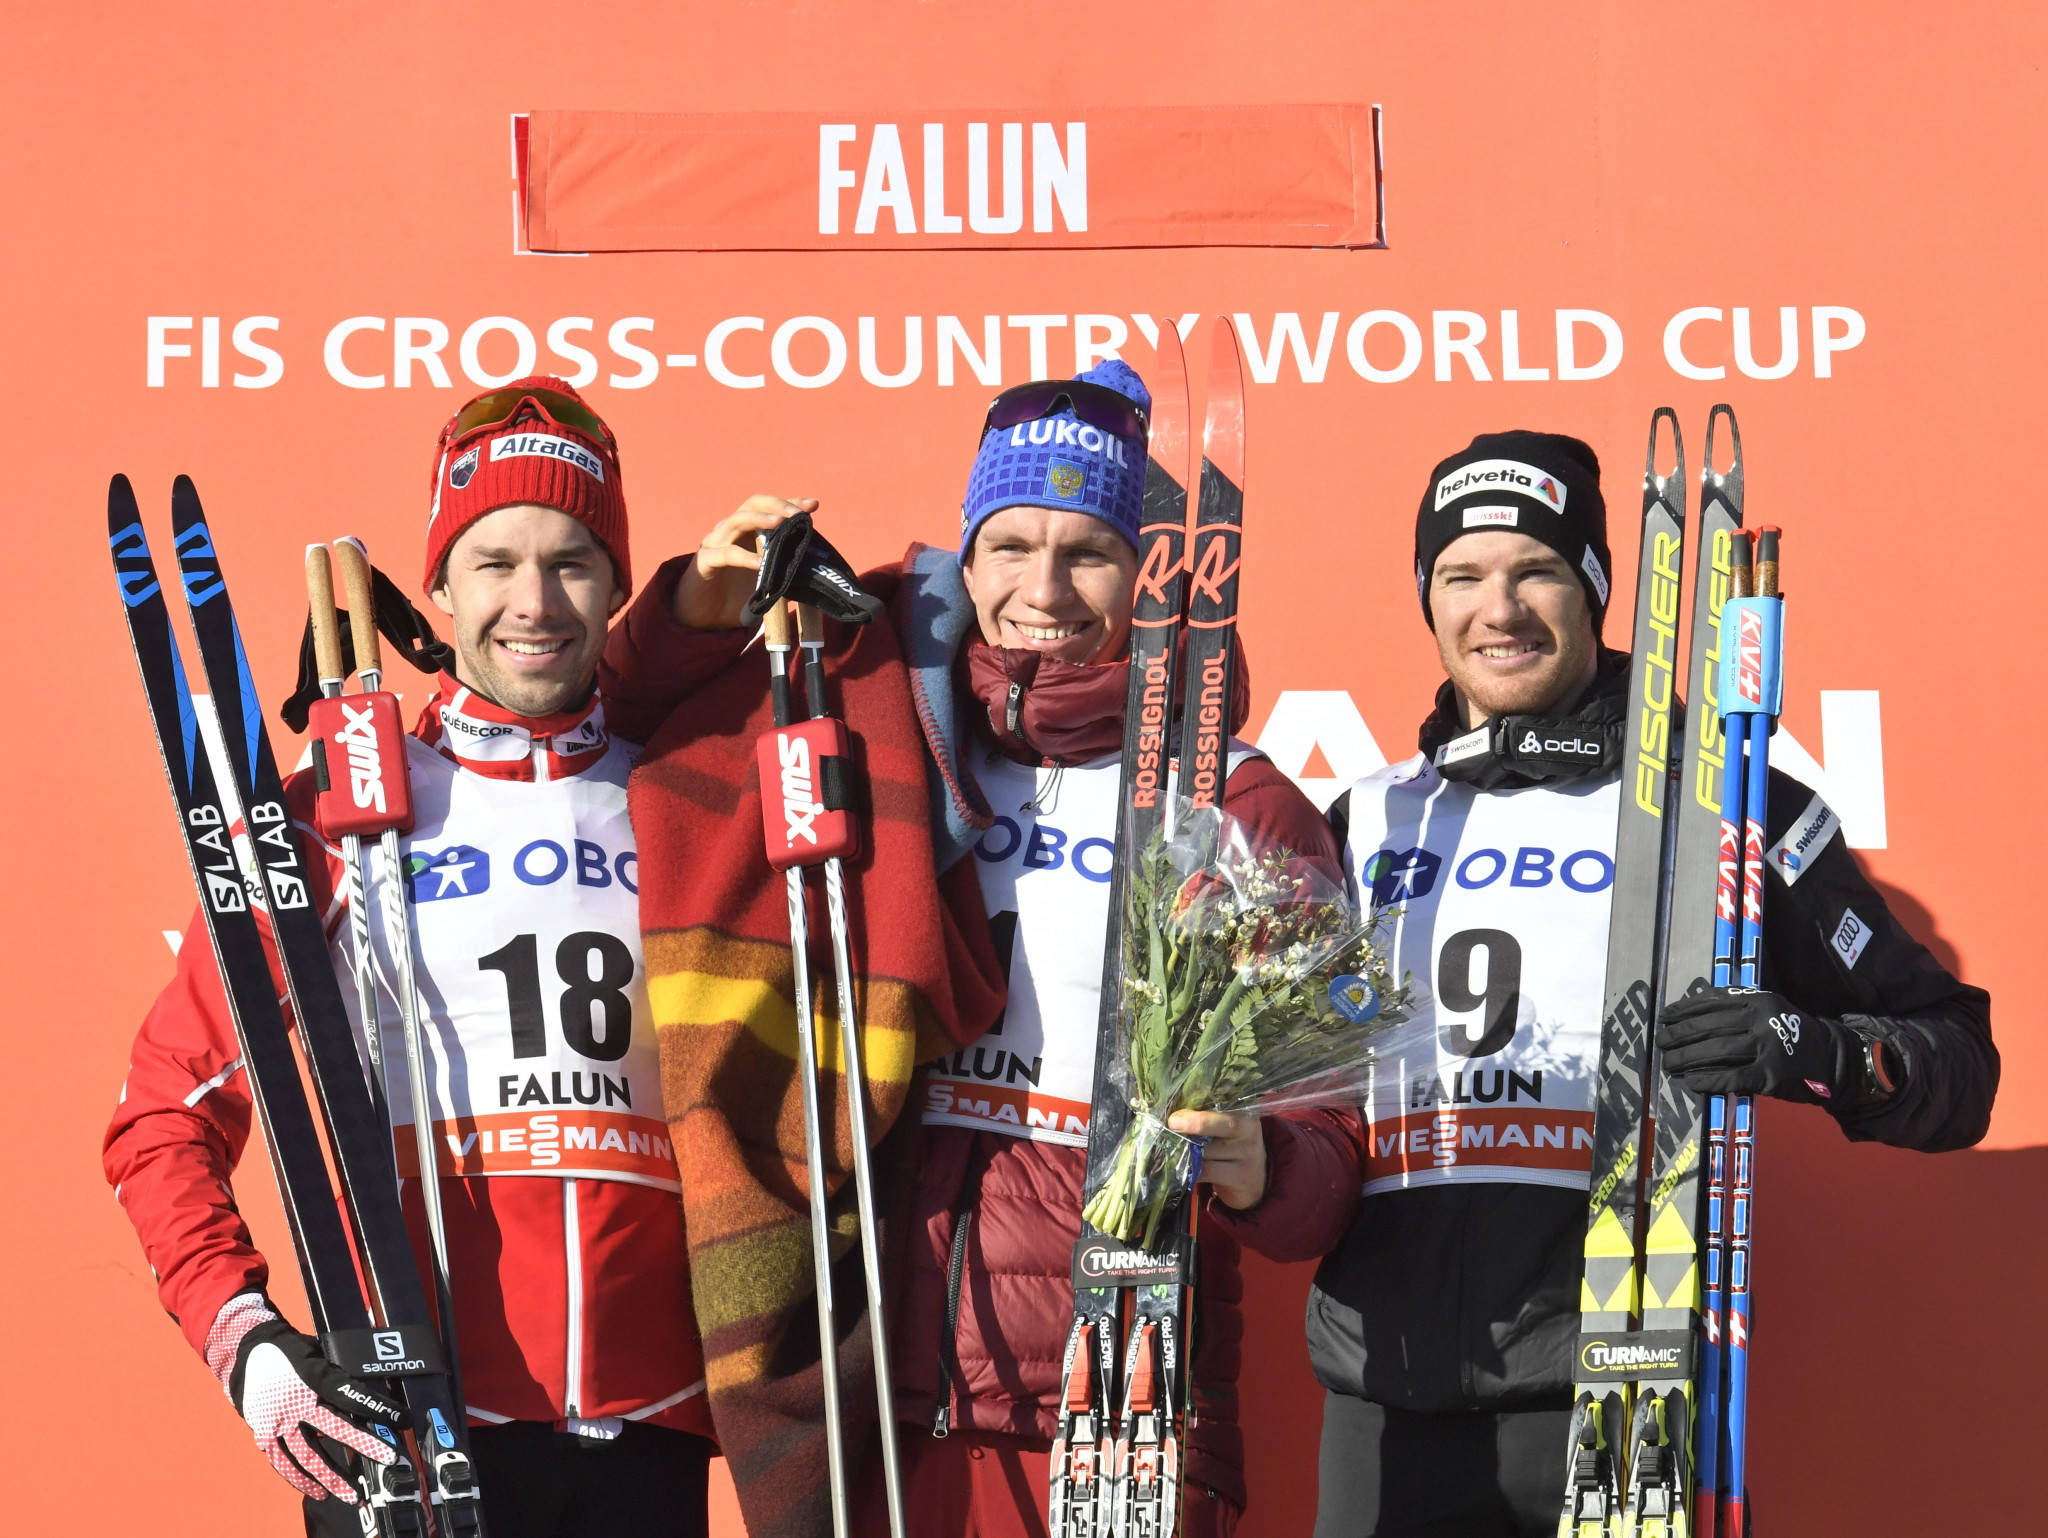 Russia's Alexander Bolshunov triumphed in the three-day men's event in Falun ©Getty Images